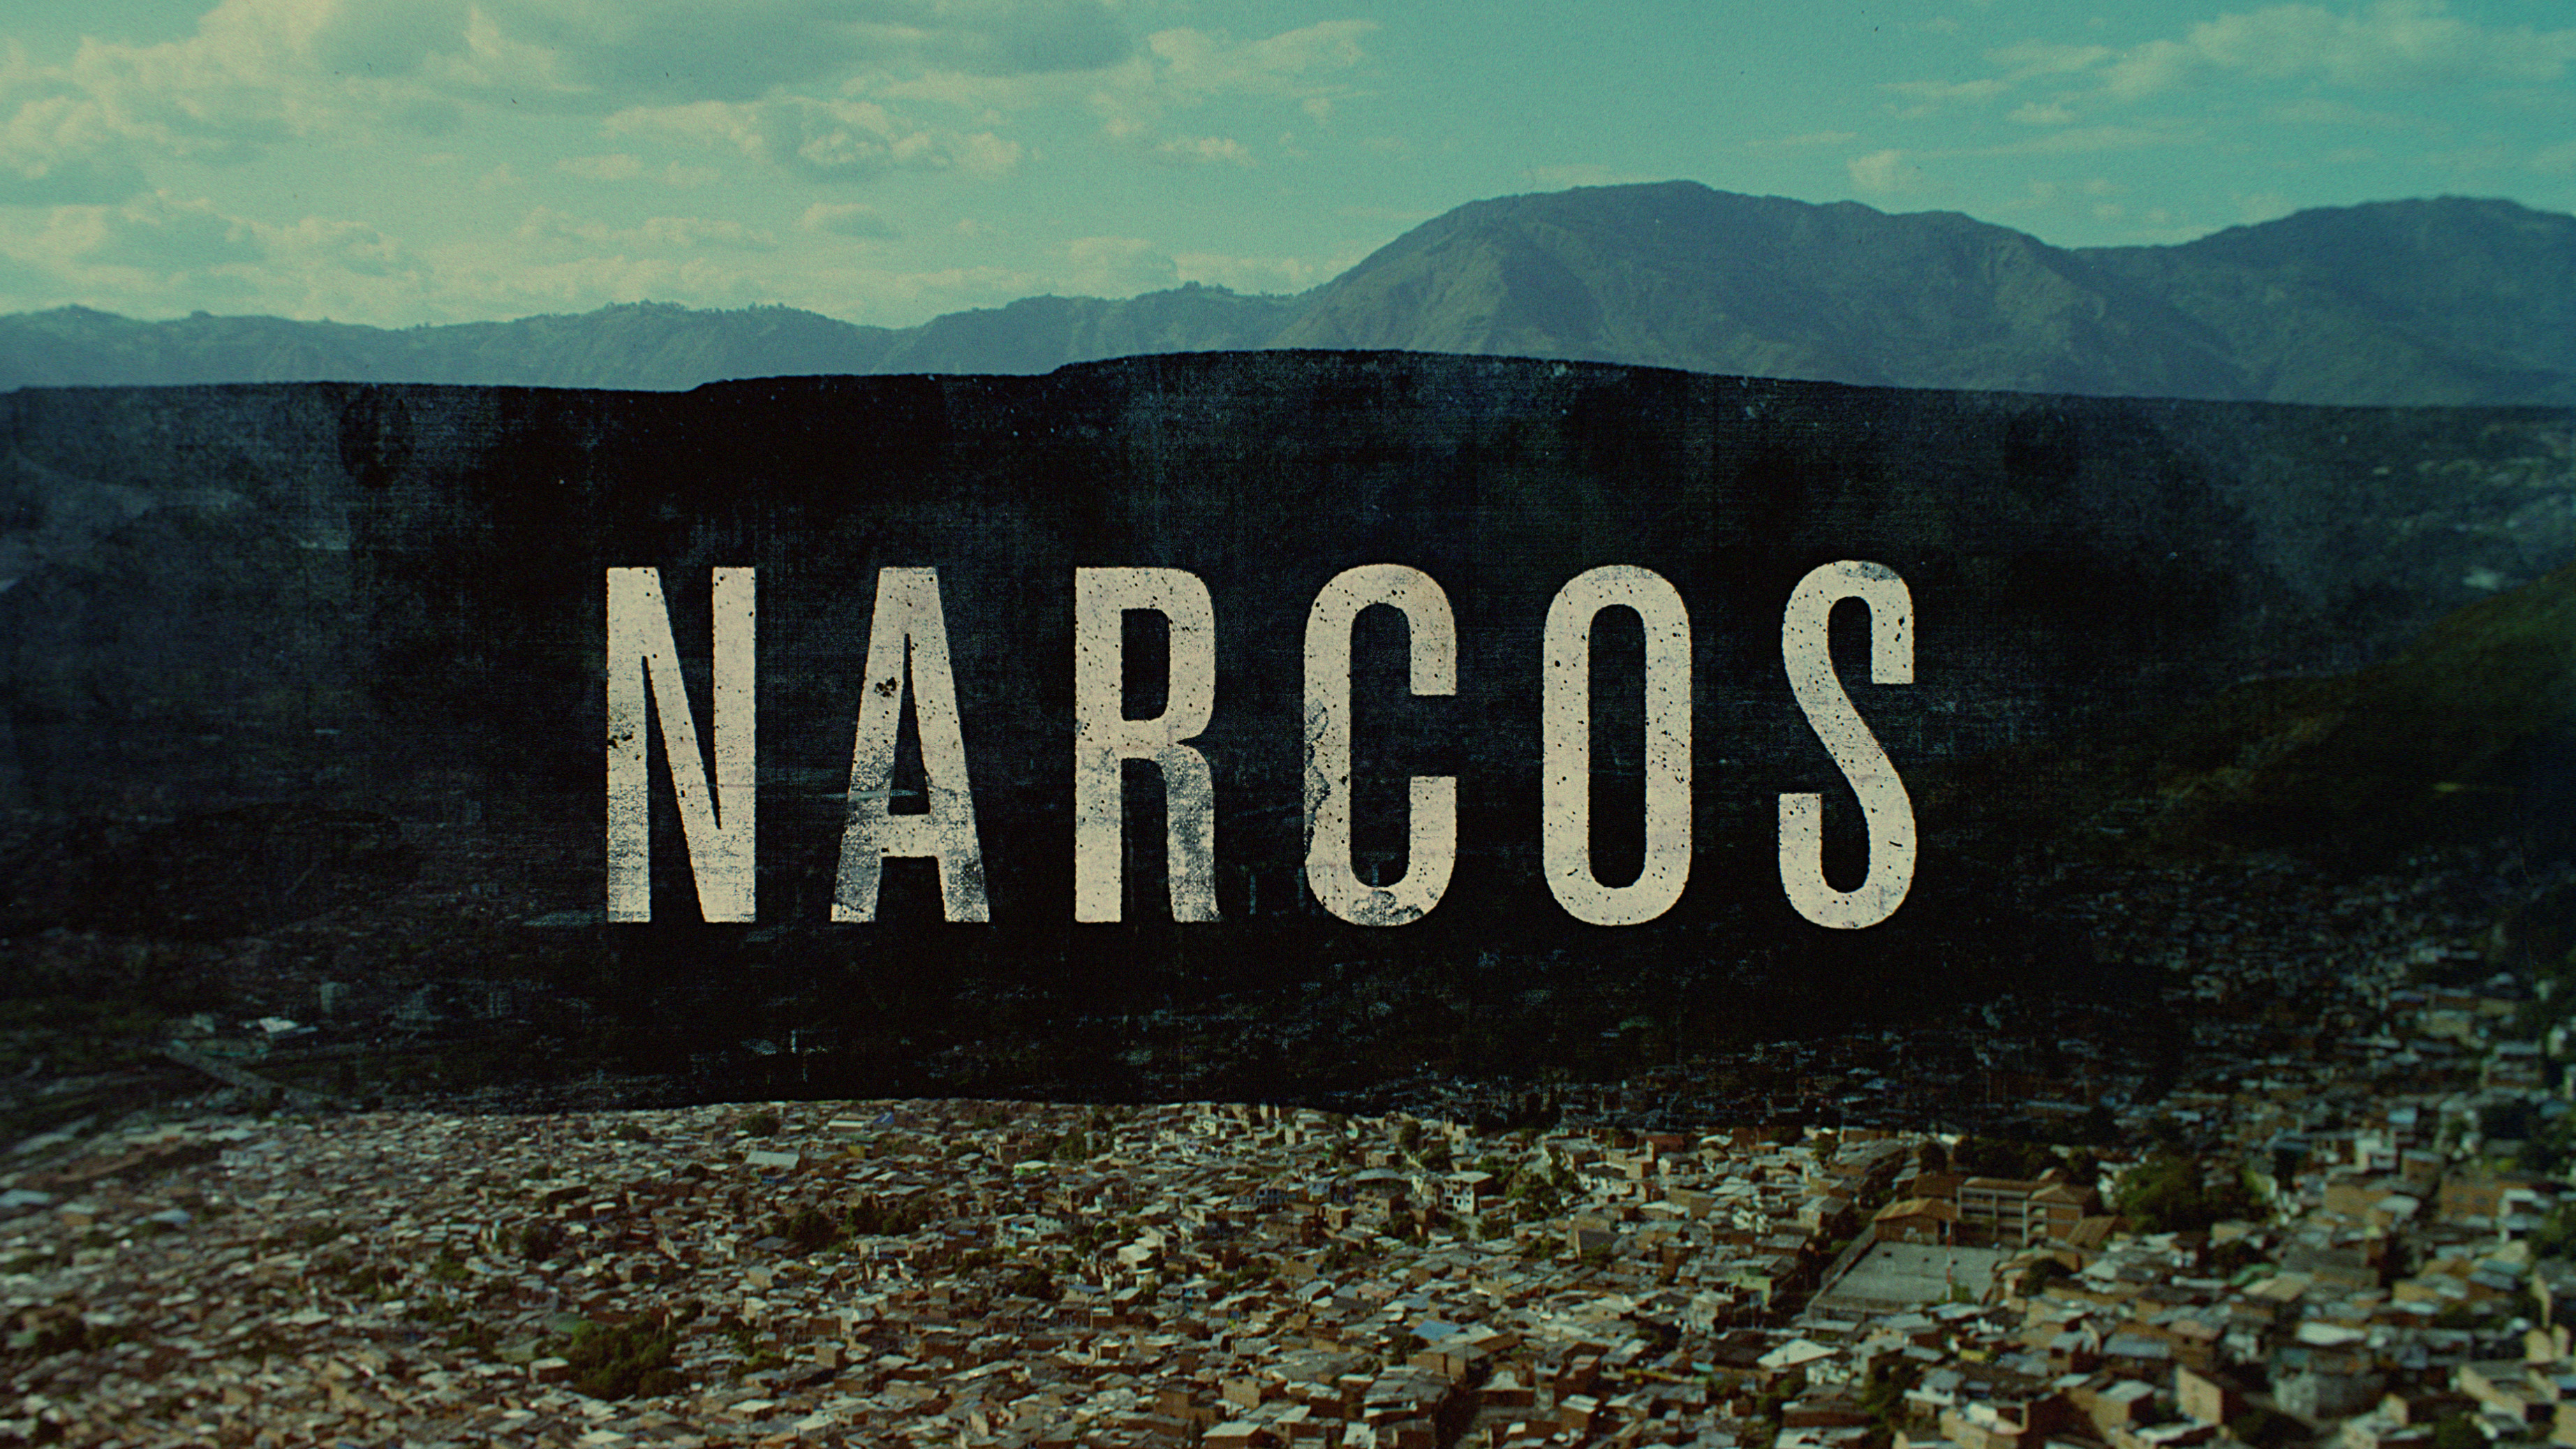 https://cinemaplanet.pt/wp-content/uploads/2016/11/narcos.jpg